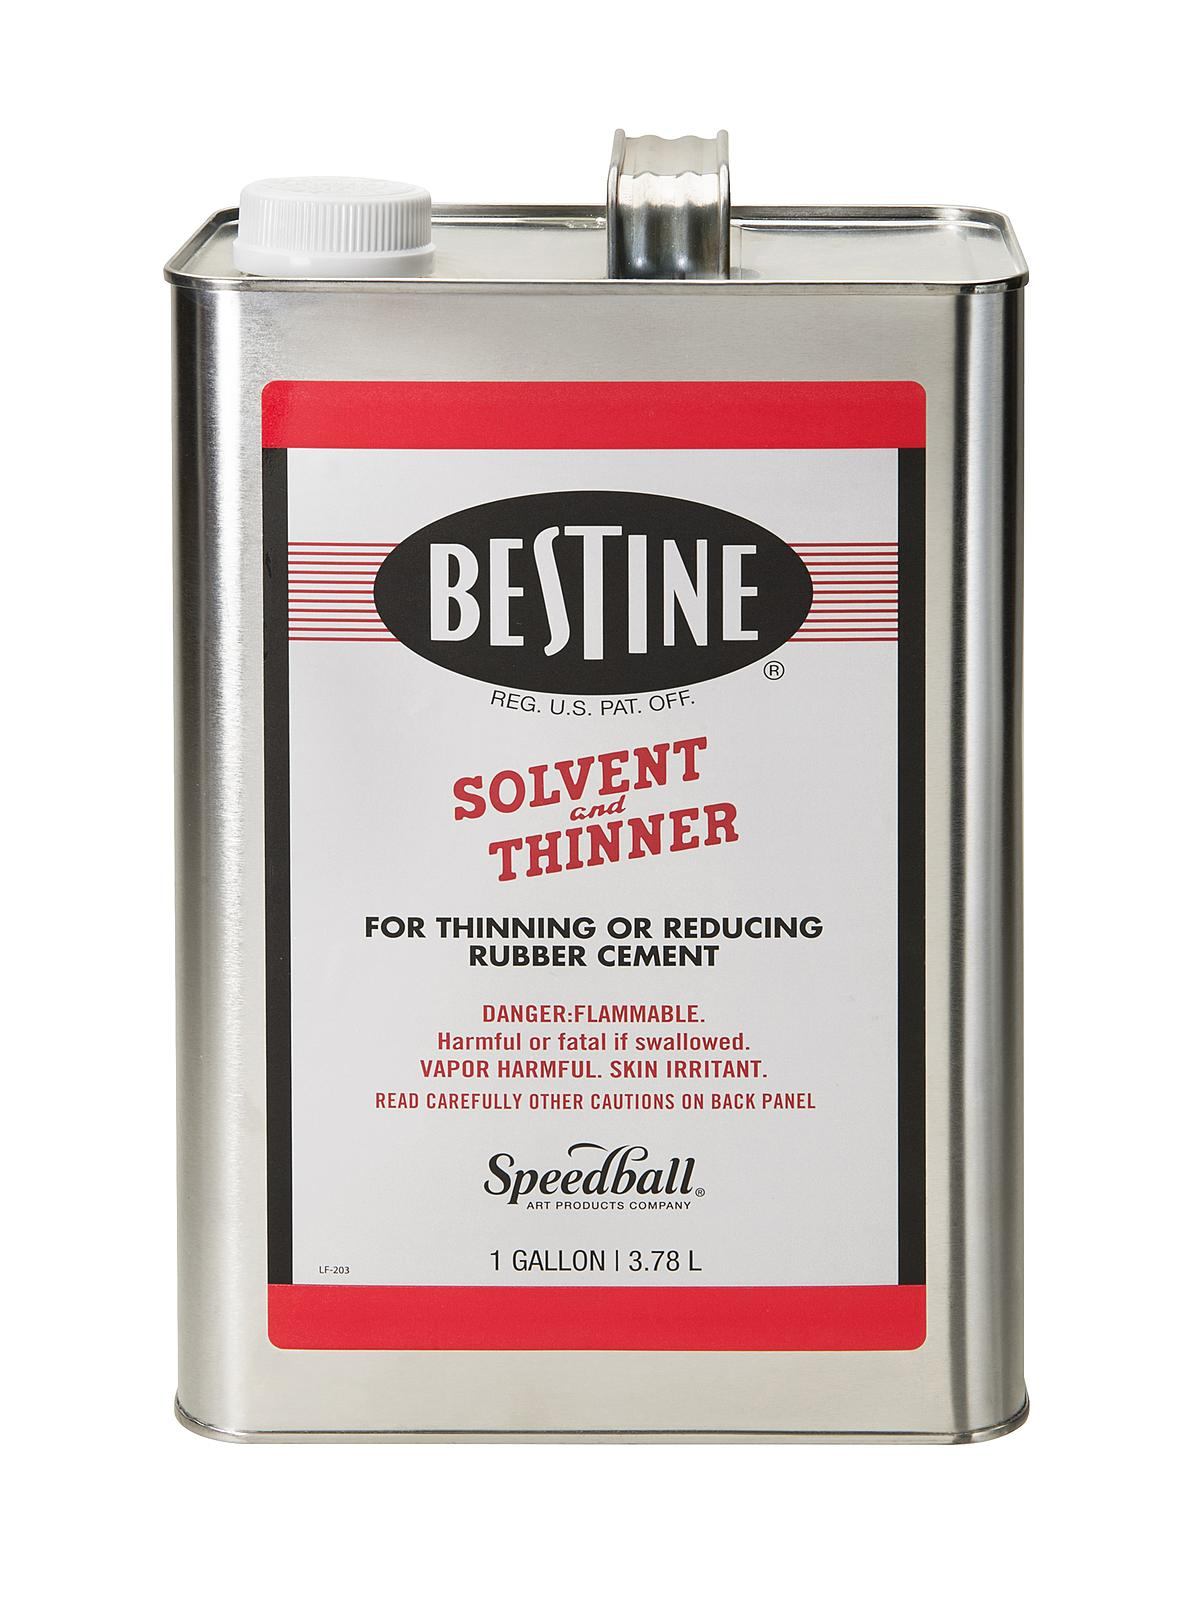 Bestine - Solvent and Thinner